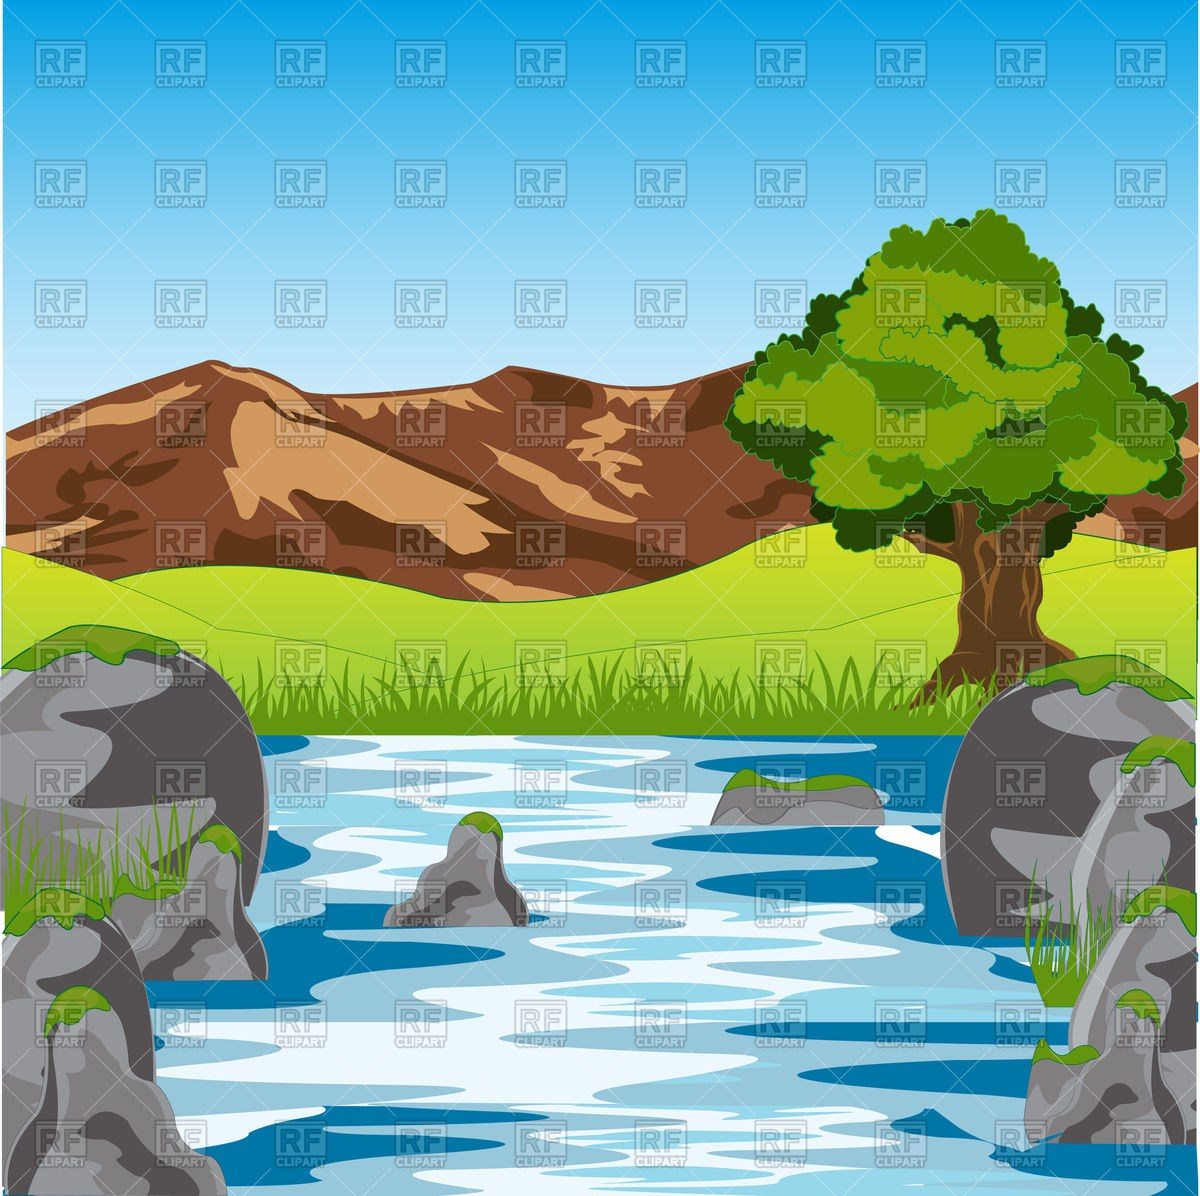 Mountains and river clipart 5 » Clipart Portal.